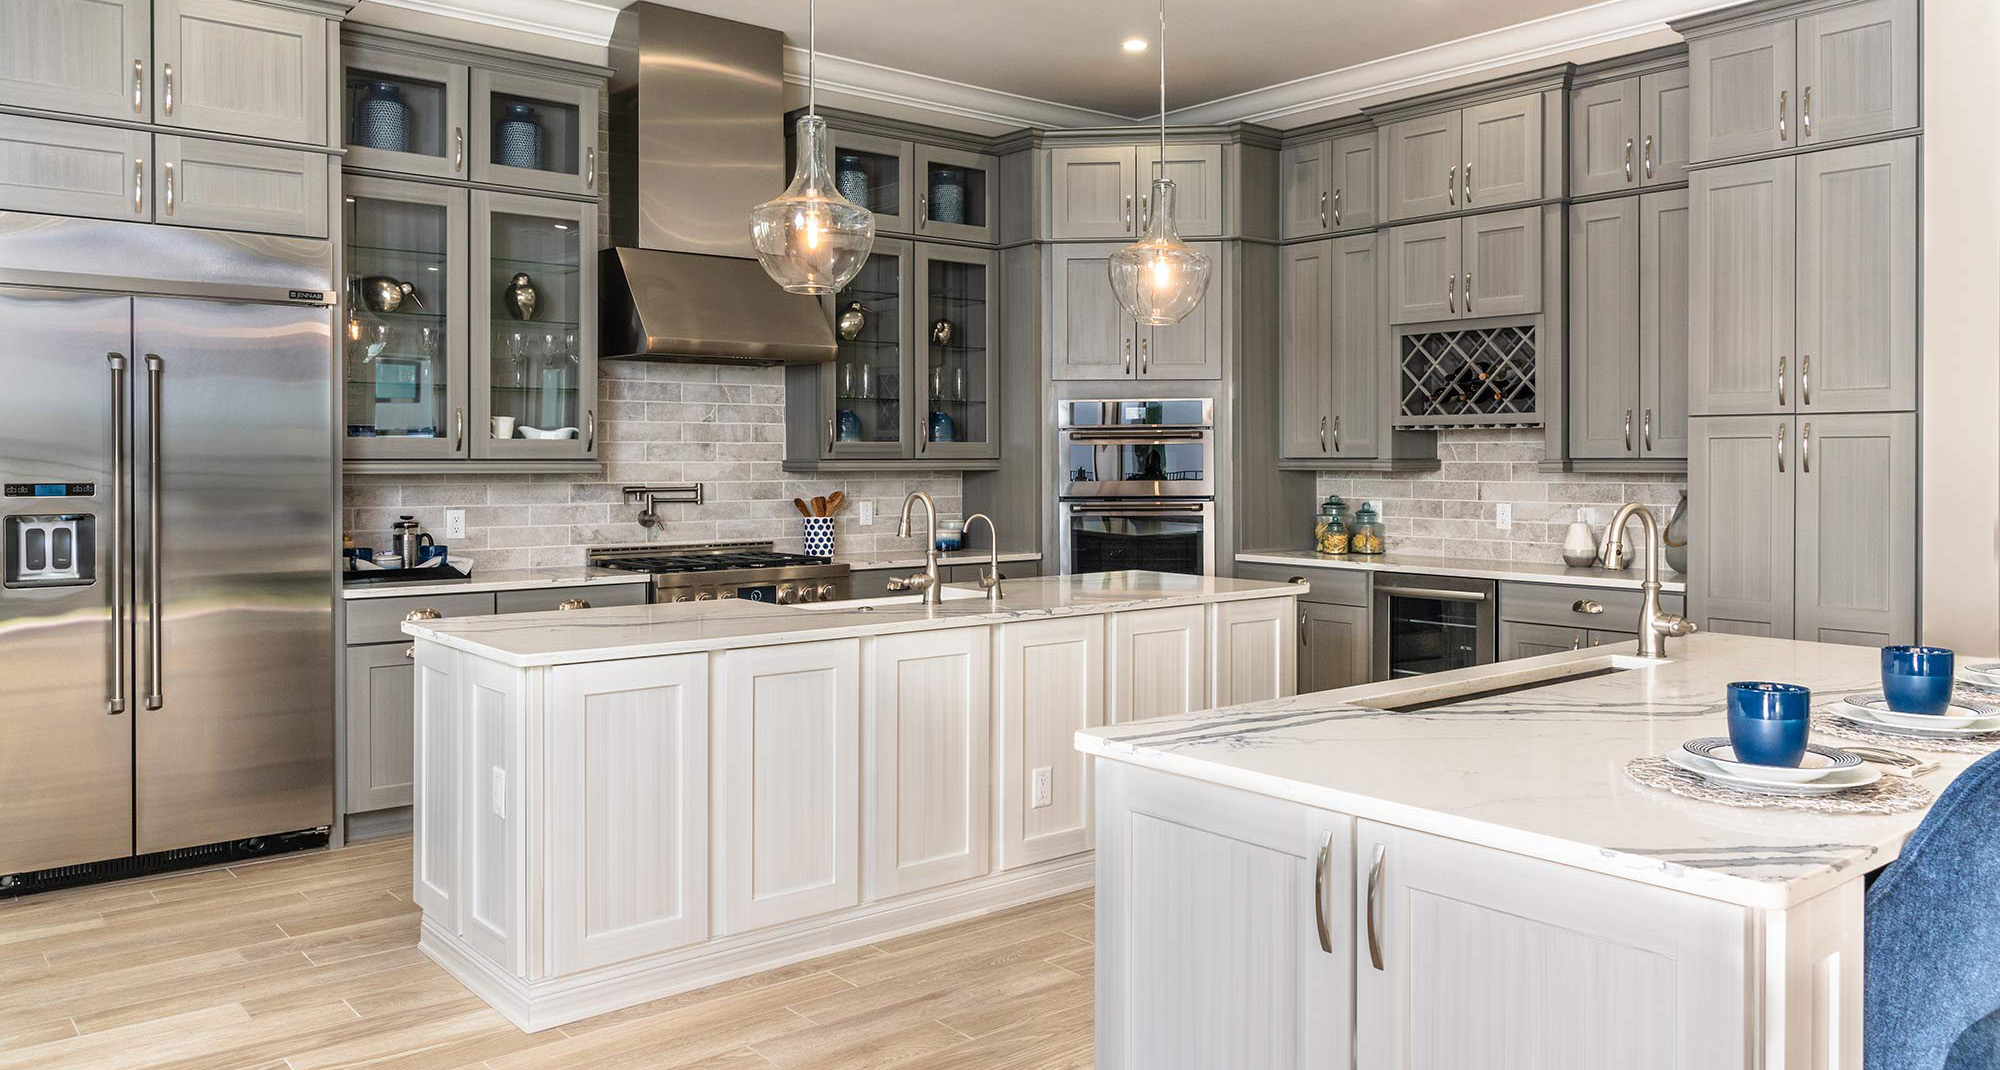 Crystal River Kitchen Cabinets Bathroom Cabinets Citrus County Remodeling Company Granite Countertops And Quartz Countertops